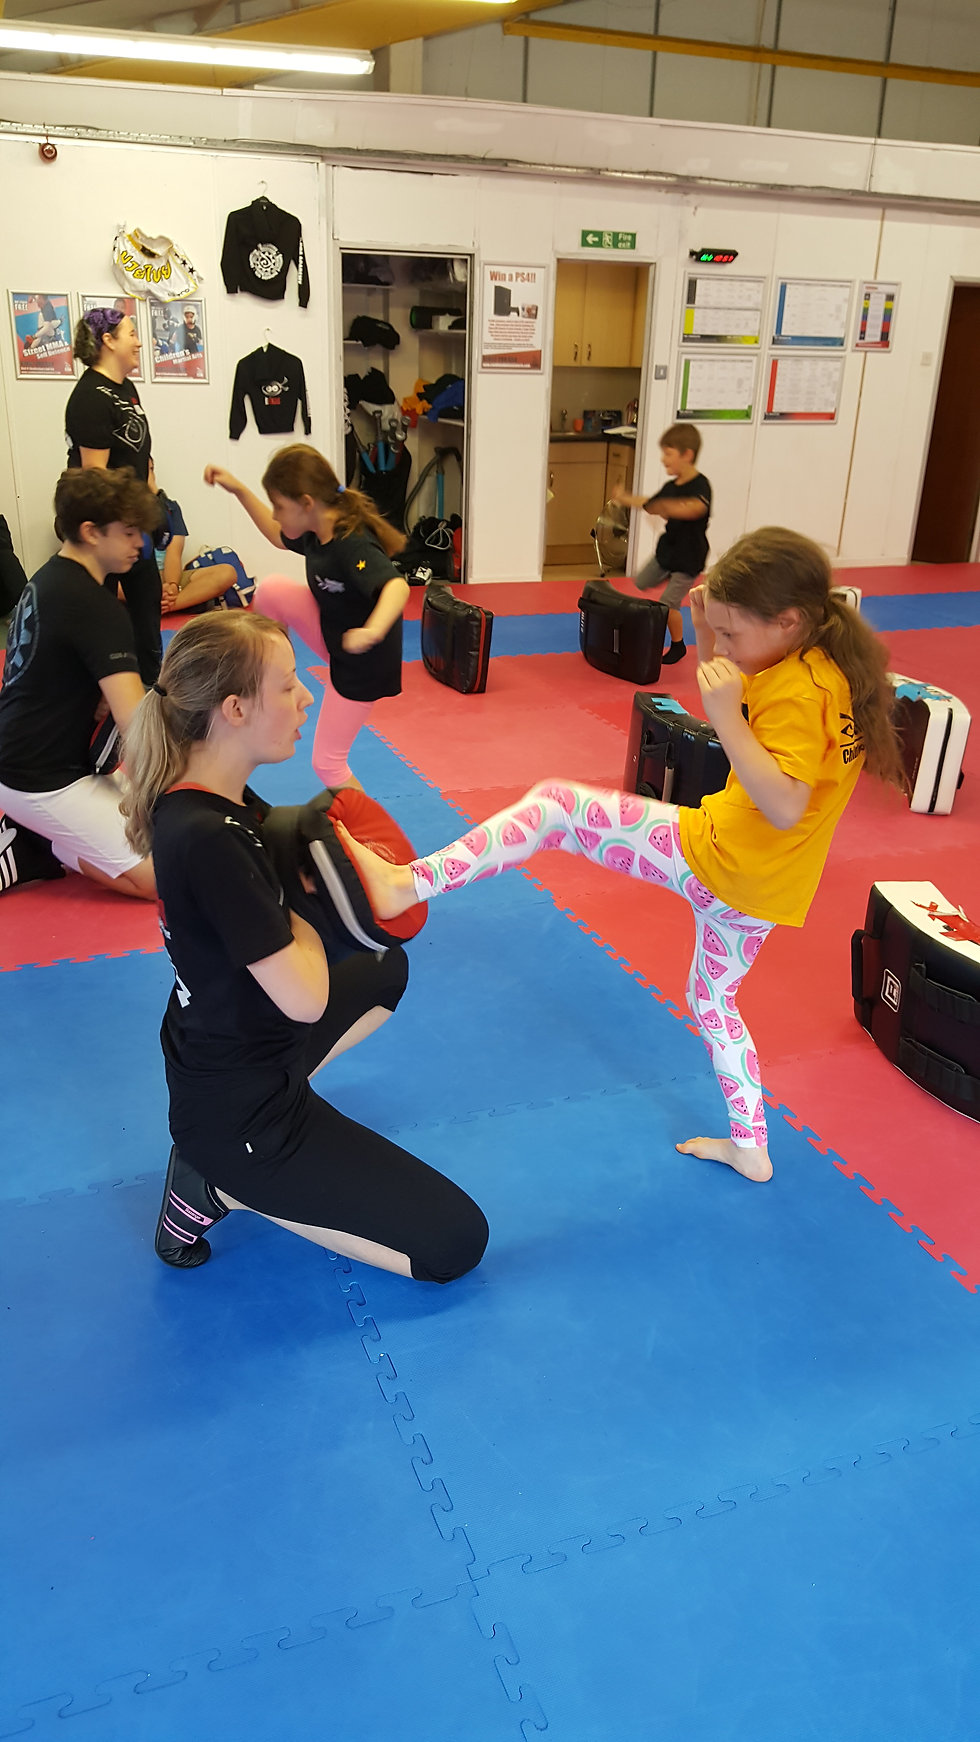 One of our instructors teaching a front kick to a child student